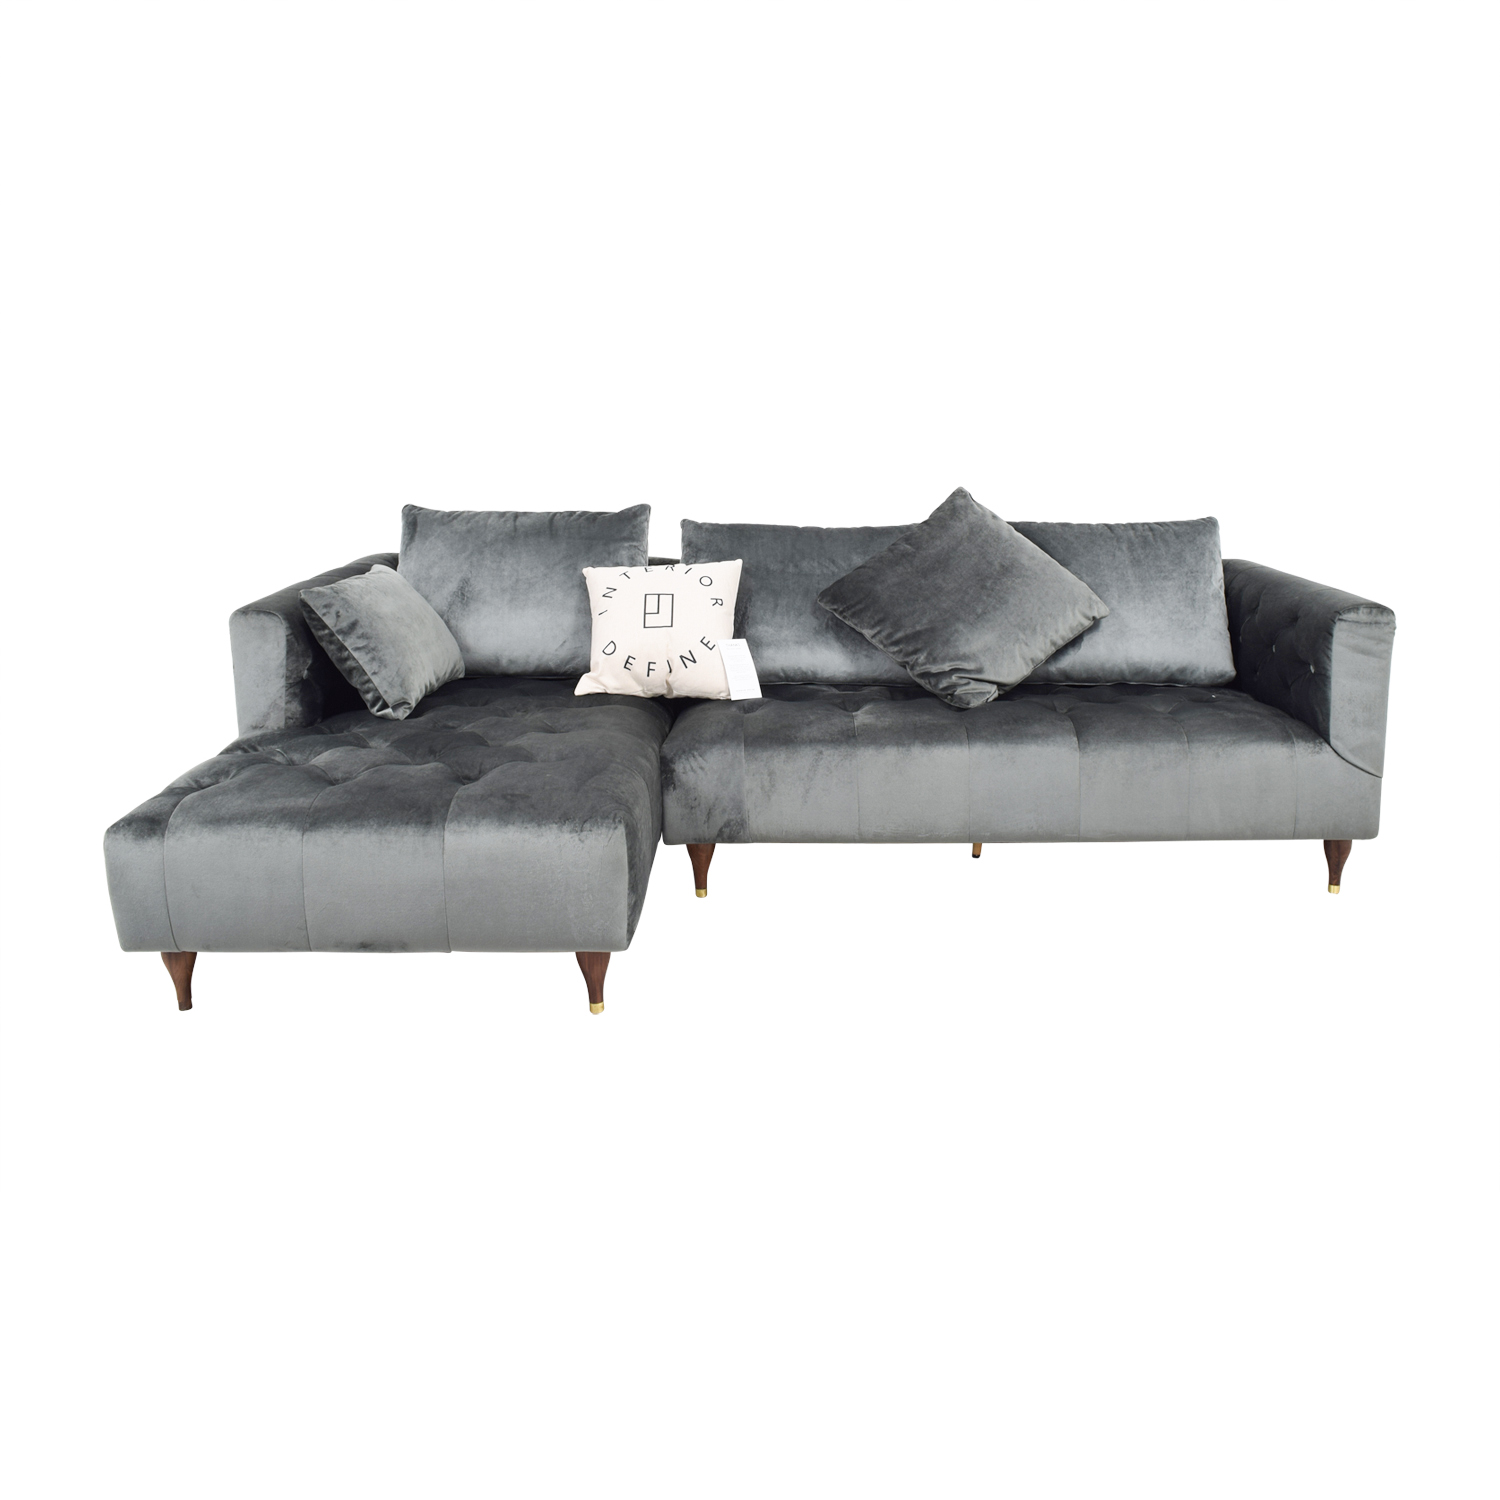 Ms. Chesterfield Narwhal Left Chaise Sectional Sofas